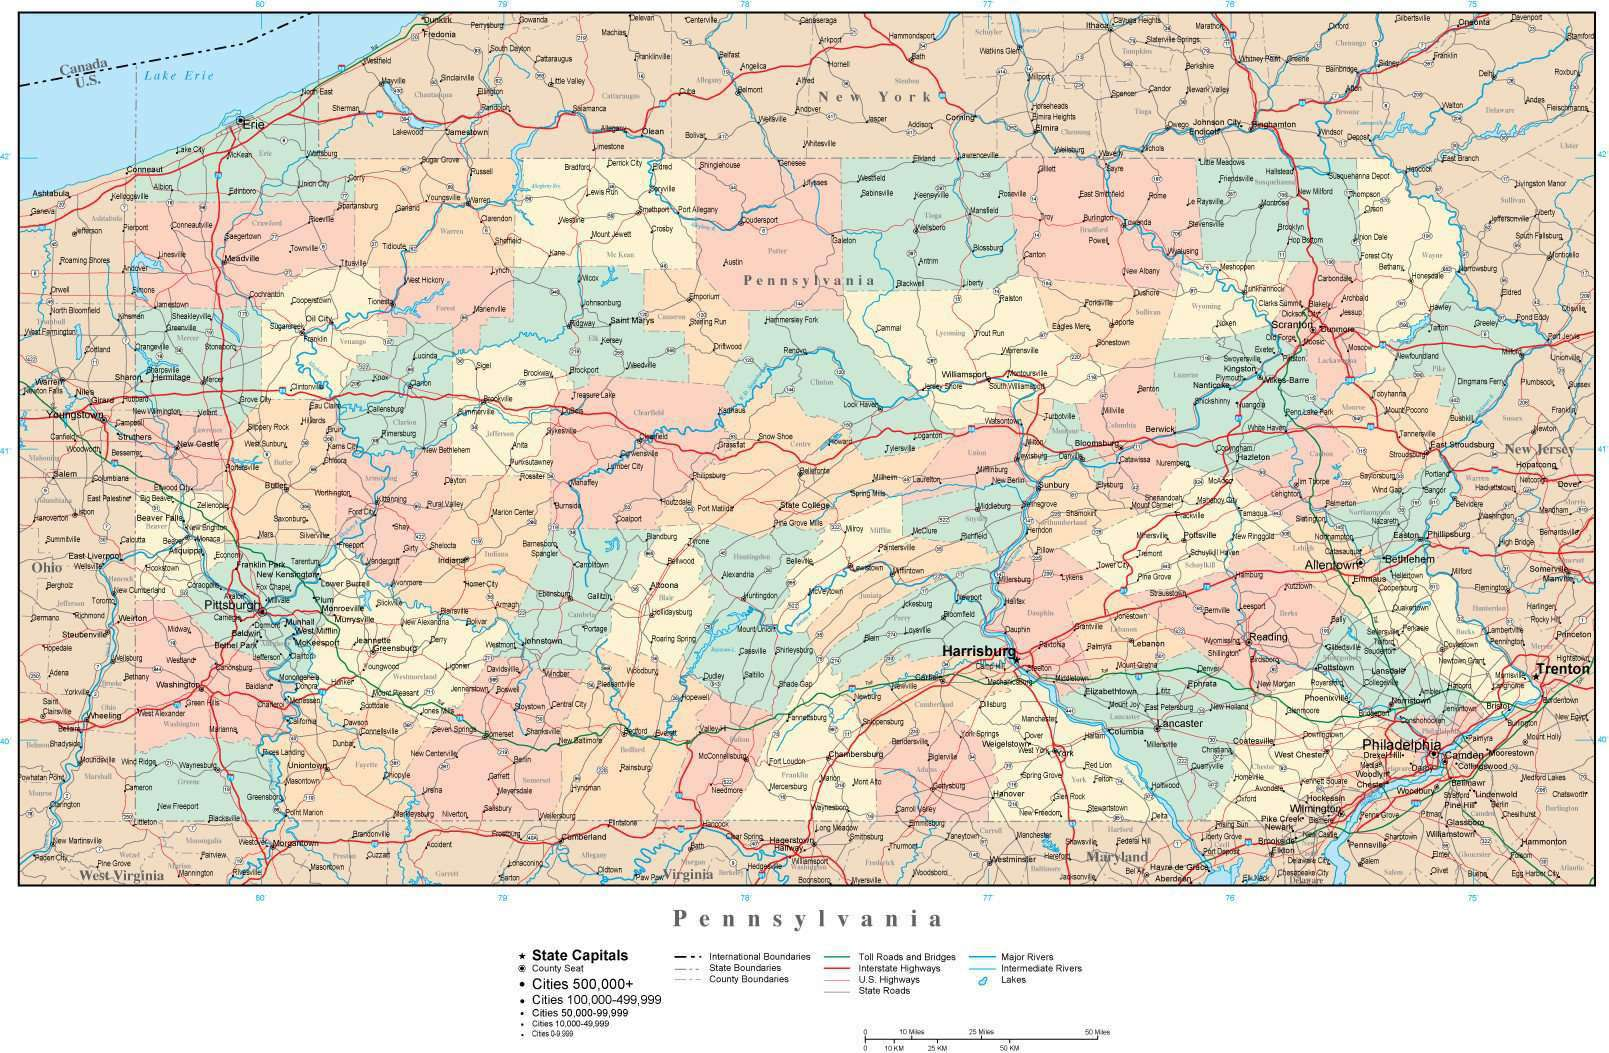 Picture of: Pennsylvania Adobe Illustrator Map With Counties Cities County Seats Major Roads